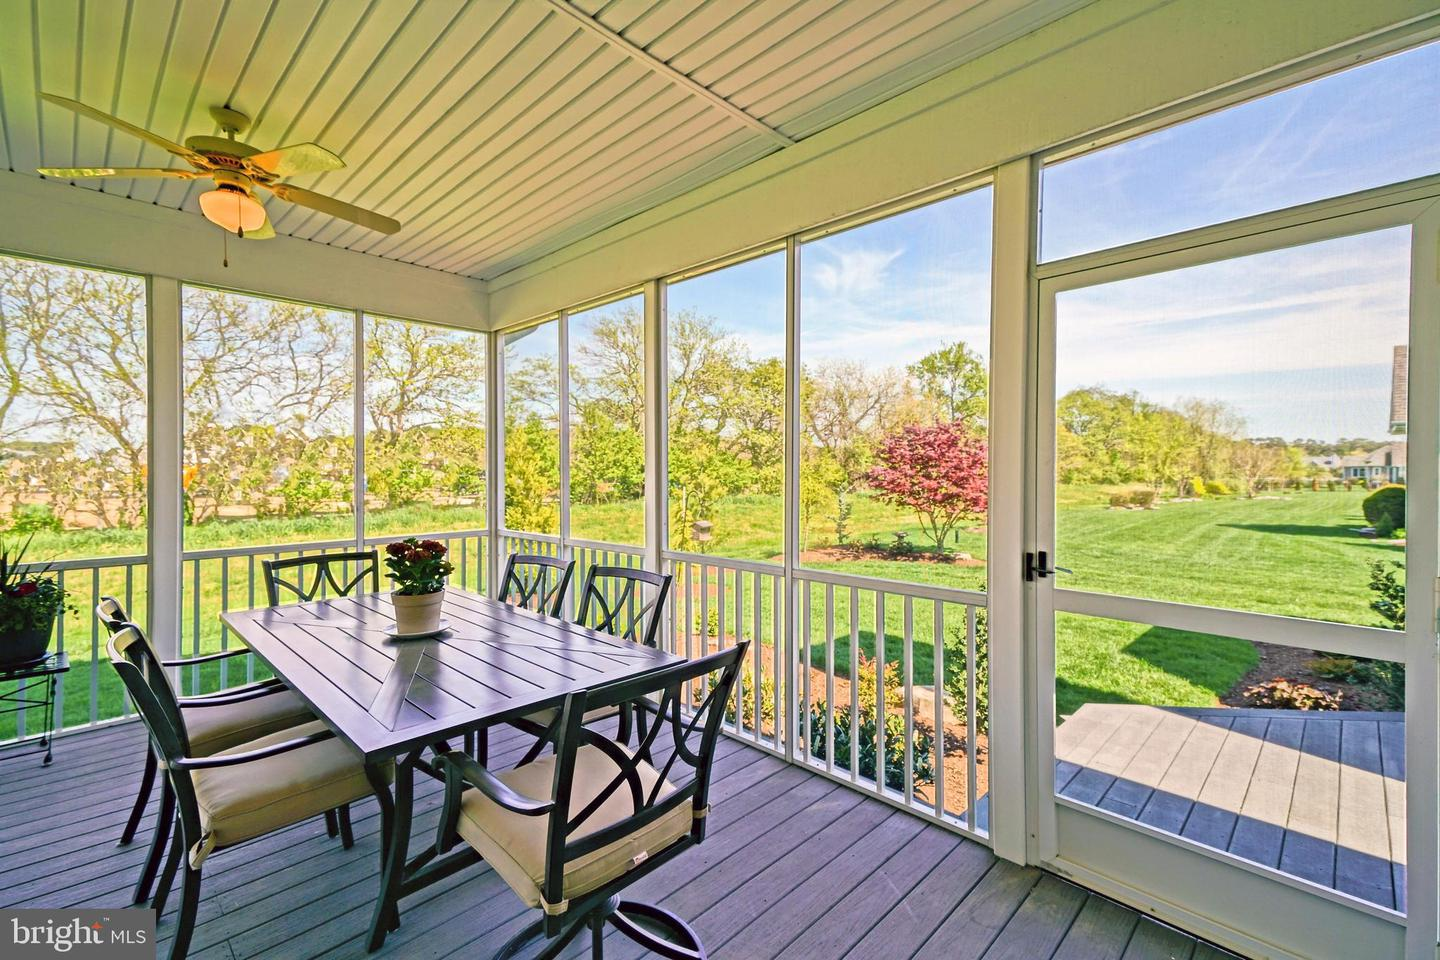 DESU139128-301667384206-2019-08-05-10-43-56 35222 Overfalls Dr N | Lewes, DE Real Estate For Sale | MLS# Desu139128  - Lee Ann Group